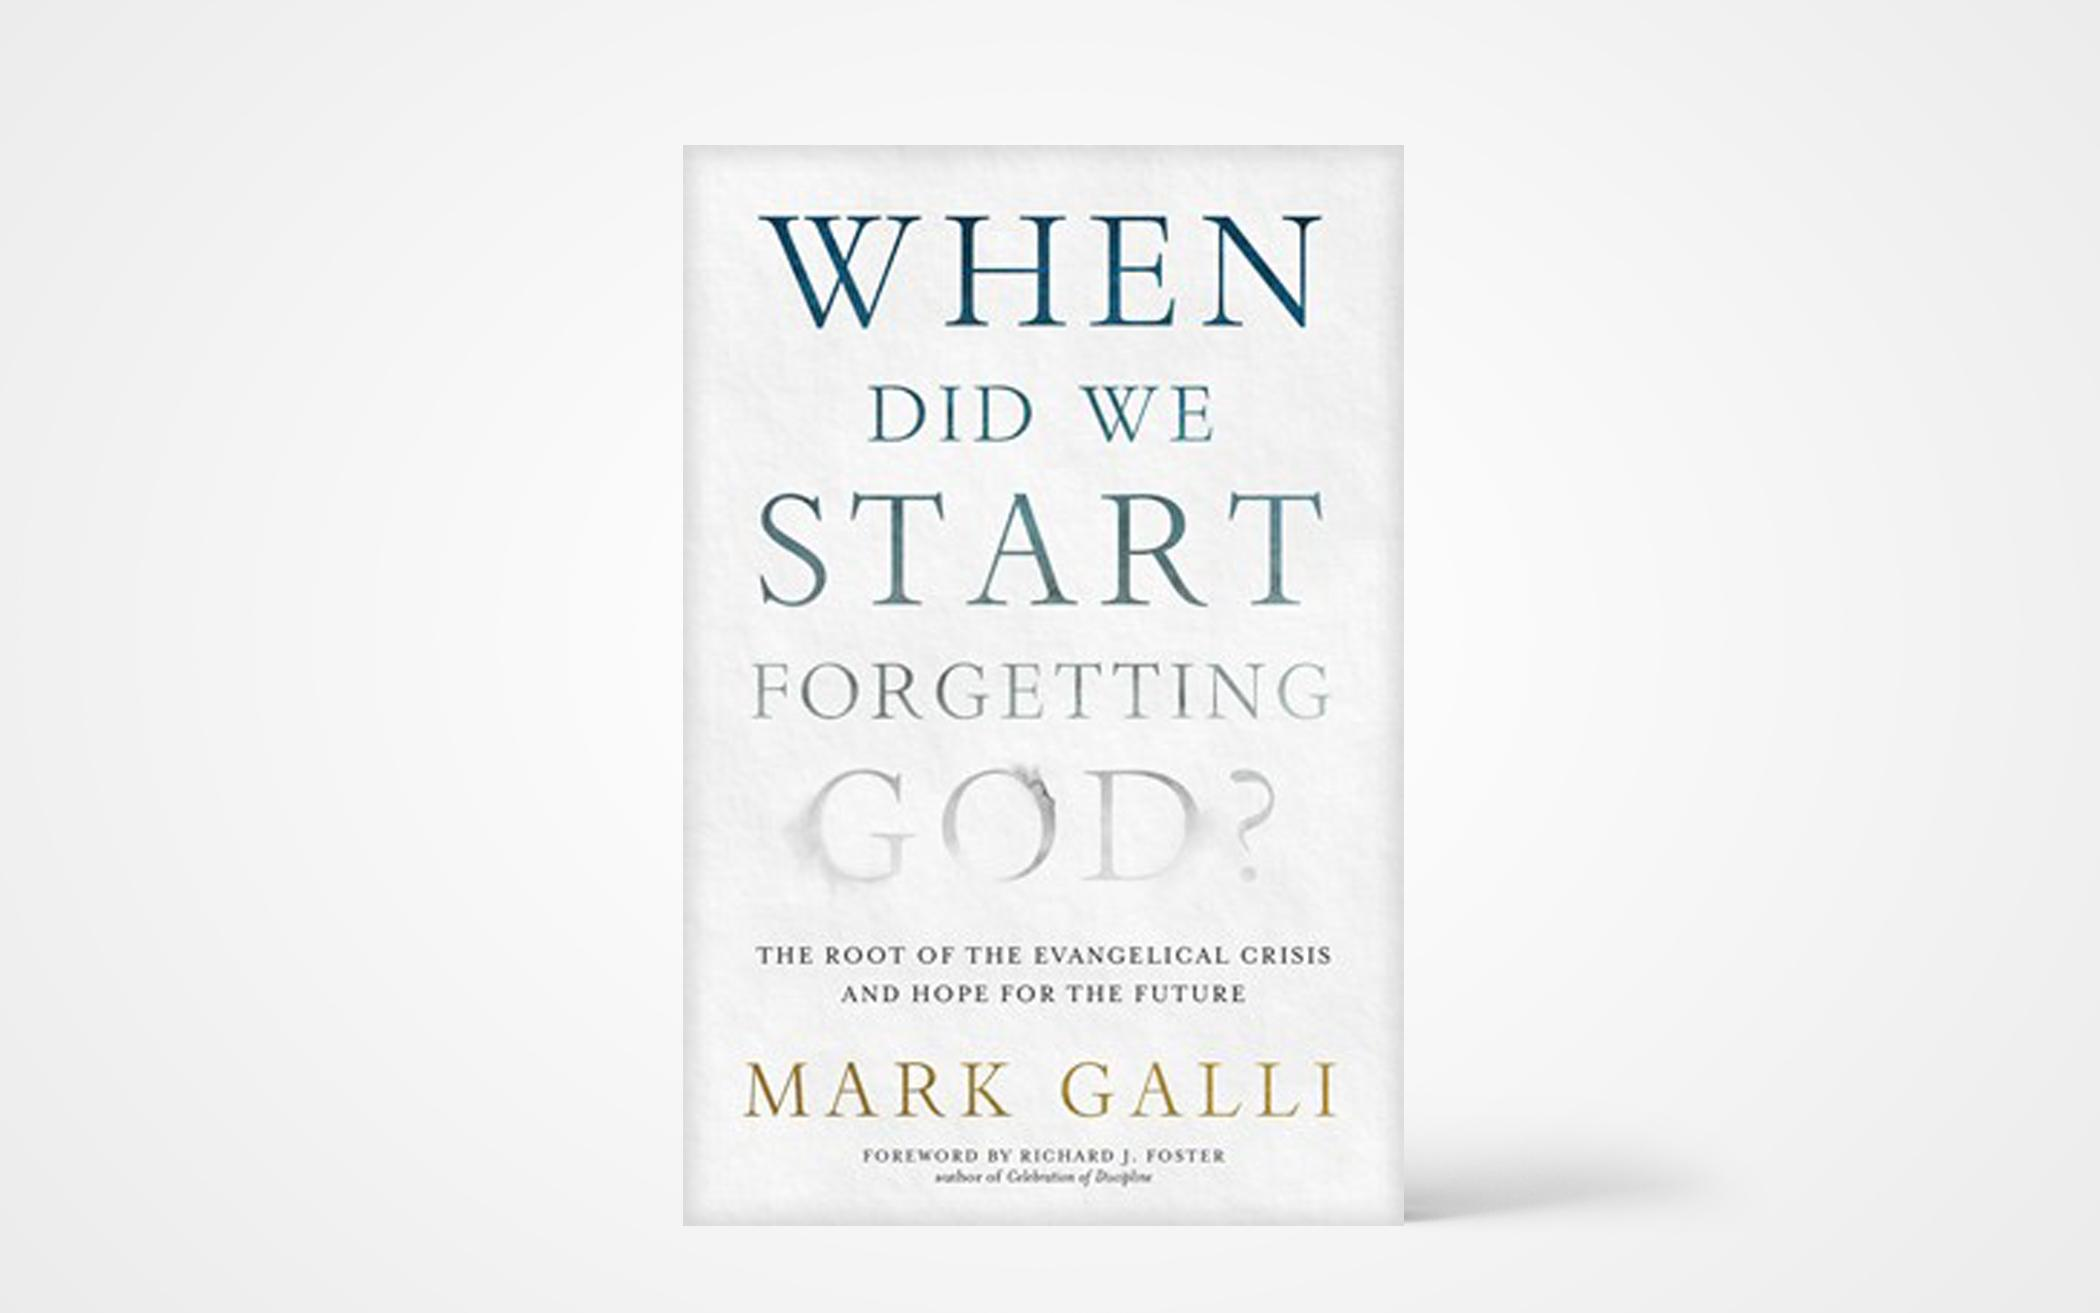 When Did We Start Forgetting God? The Root of the Evangelical Crisis and Hope for the Future